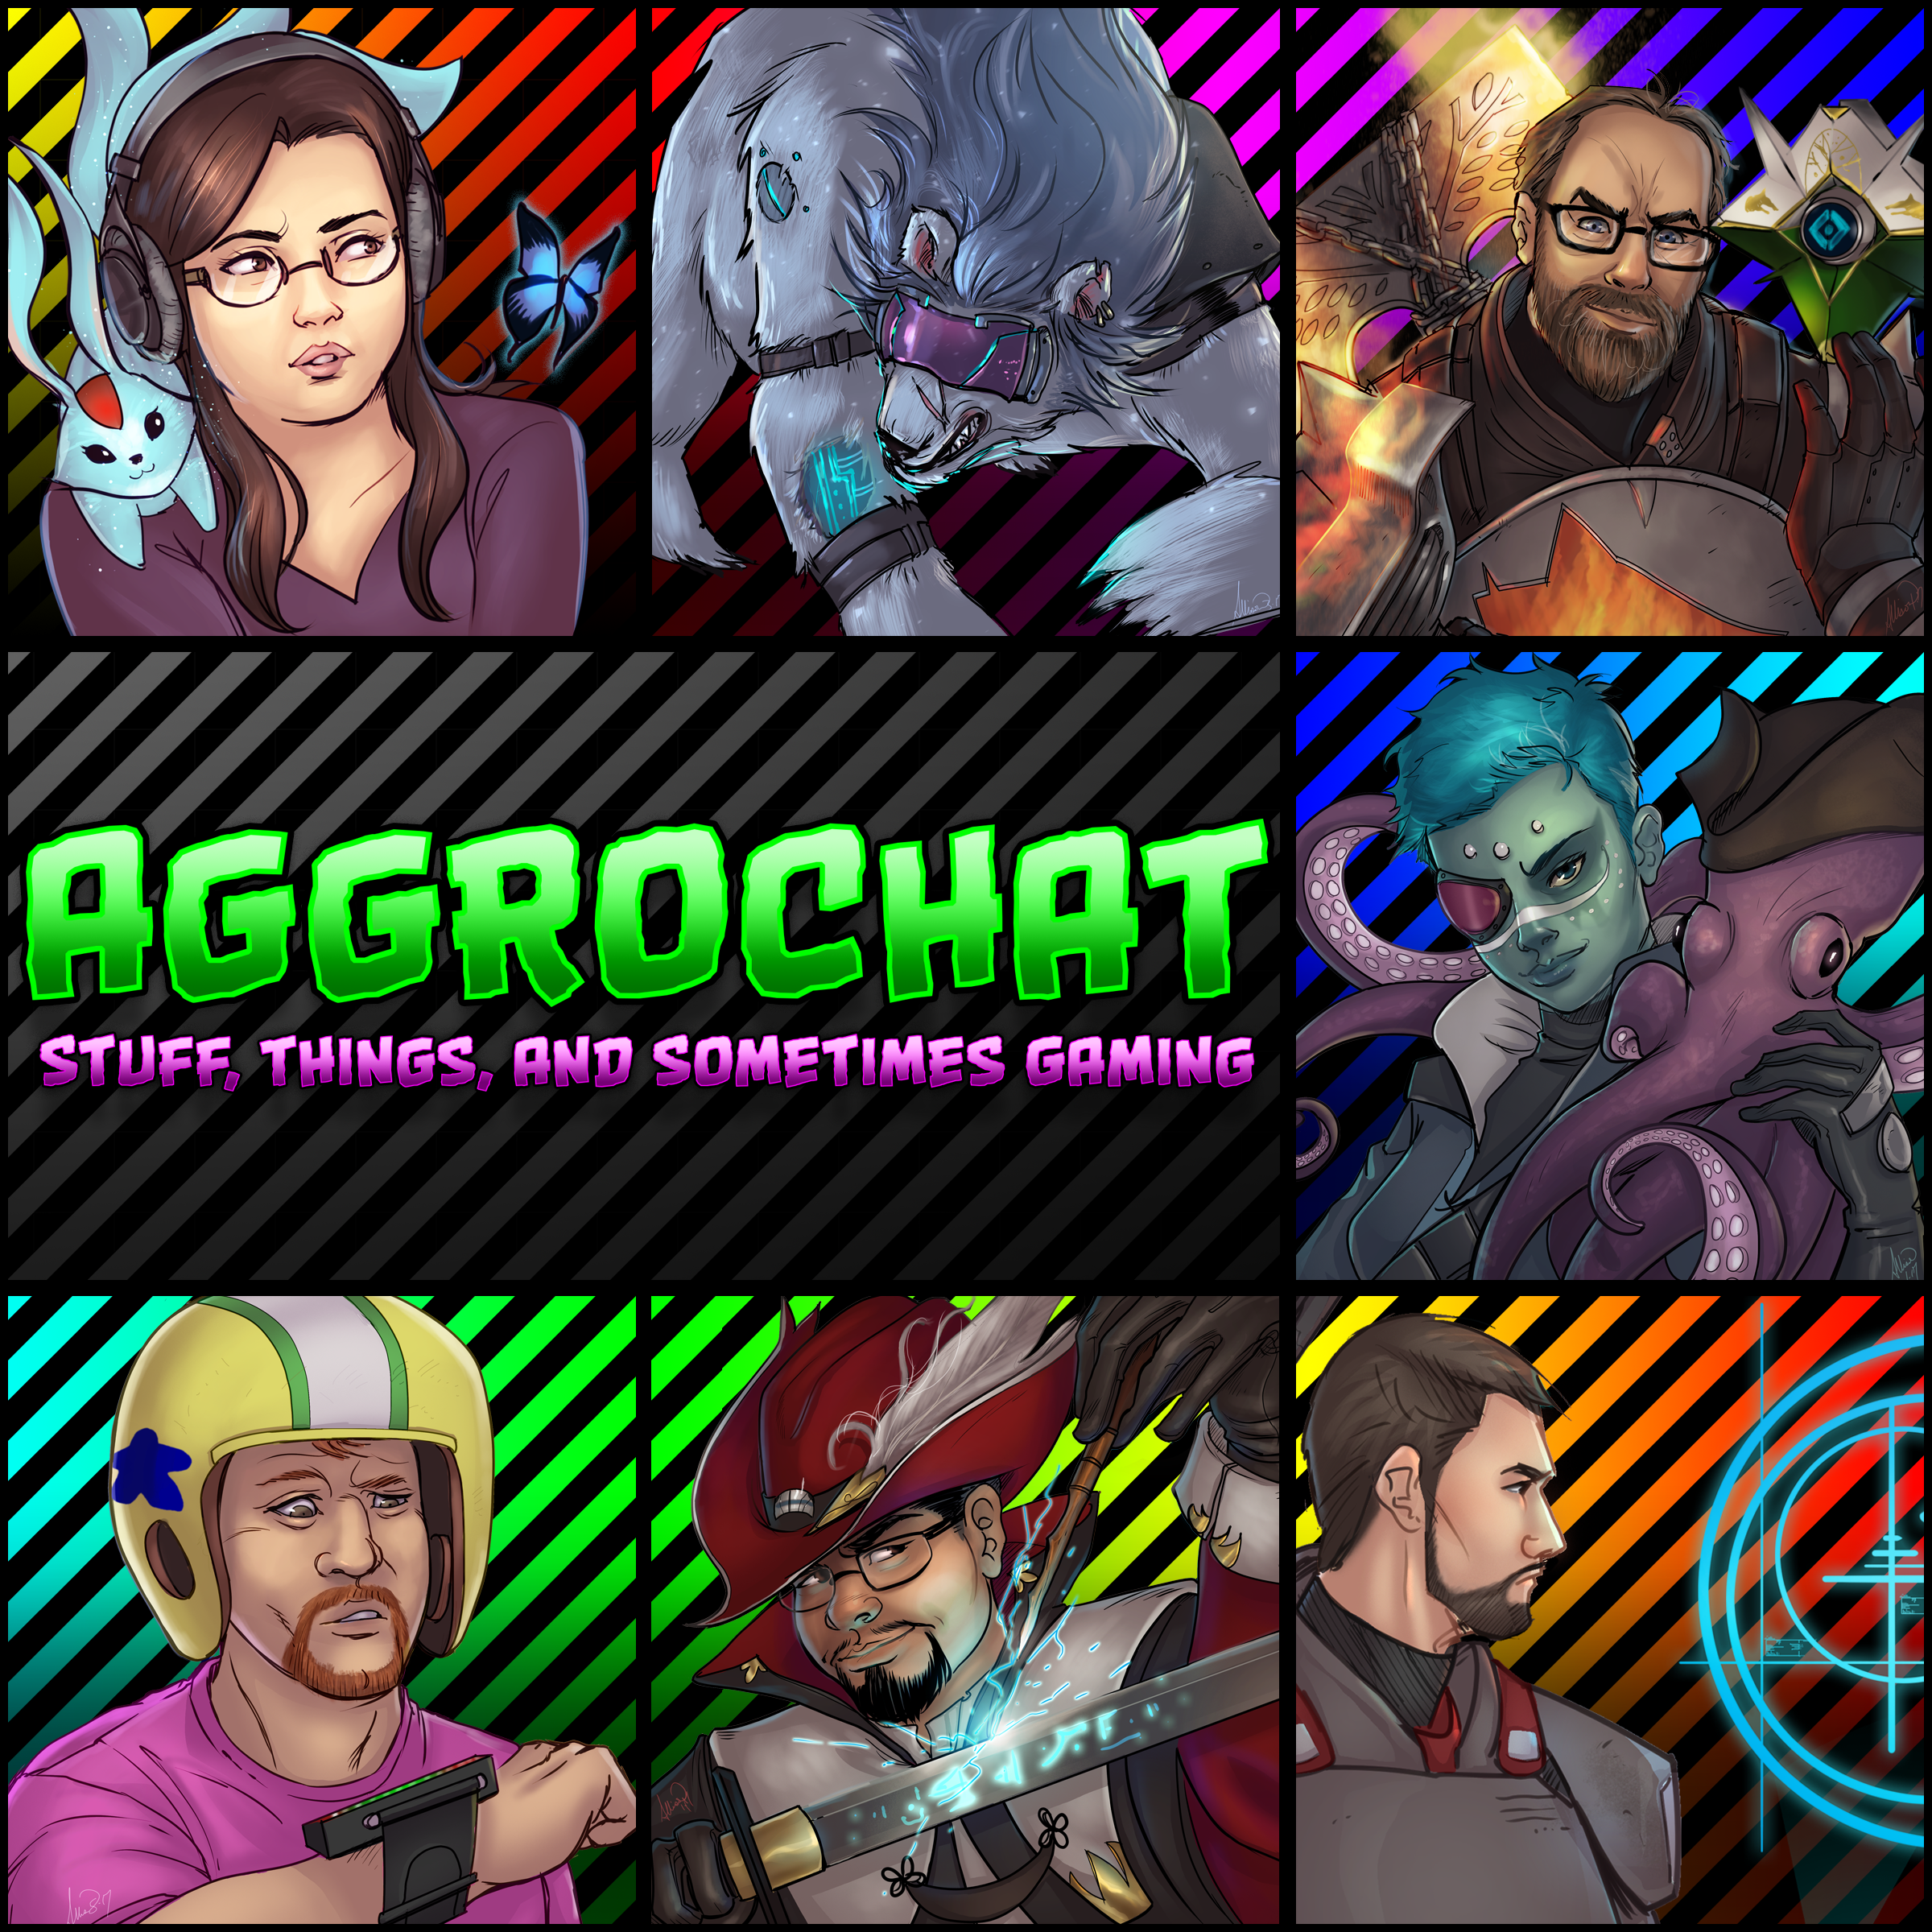 AggroChat #163 - The Subnautica Show AggroChat: Tales Of The